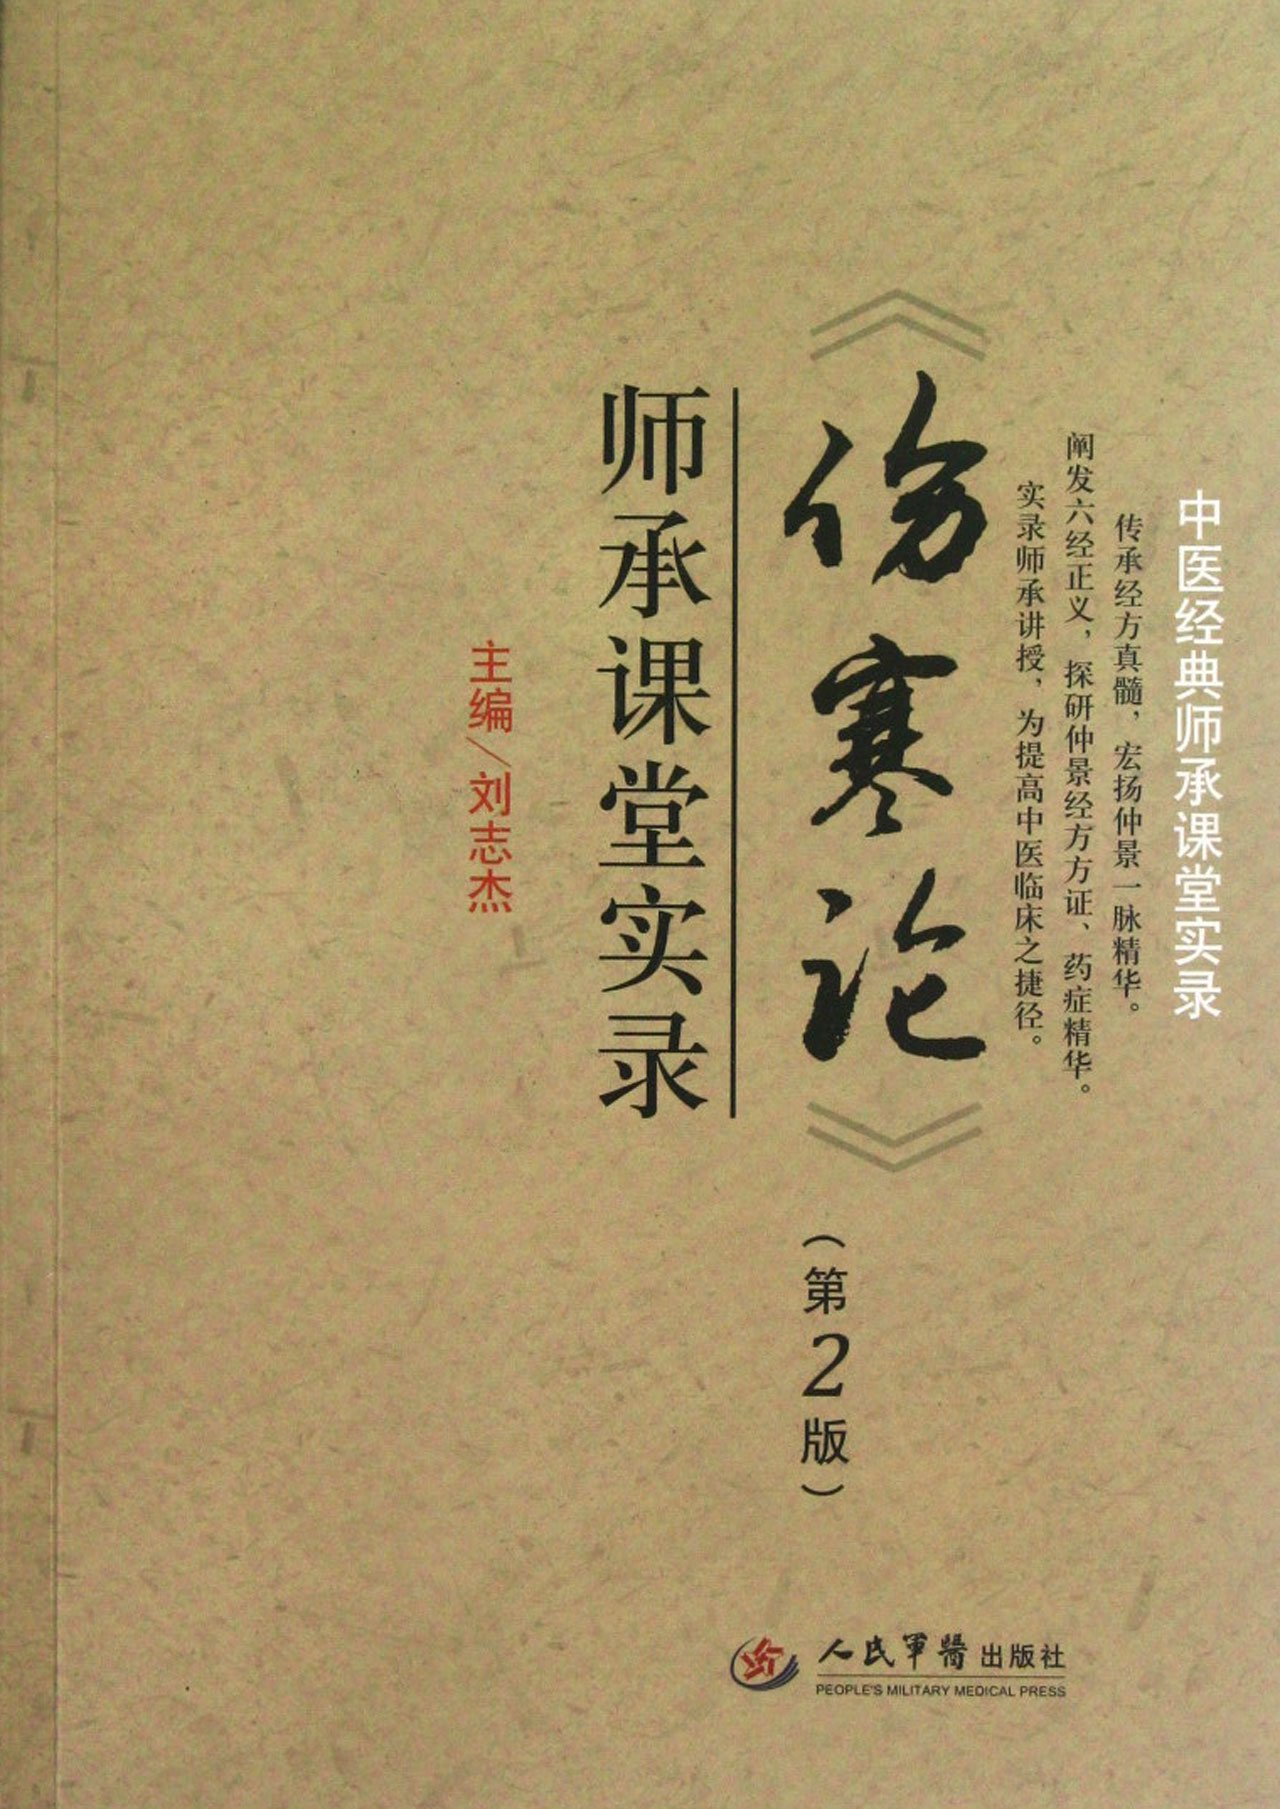 Read Online Succession and Tradition of Treatise on Febrile Diseases(2nd Edition) (Chinese Edition) PDF